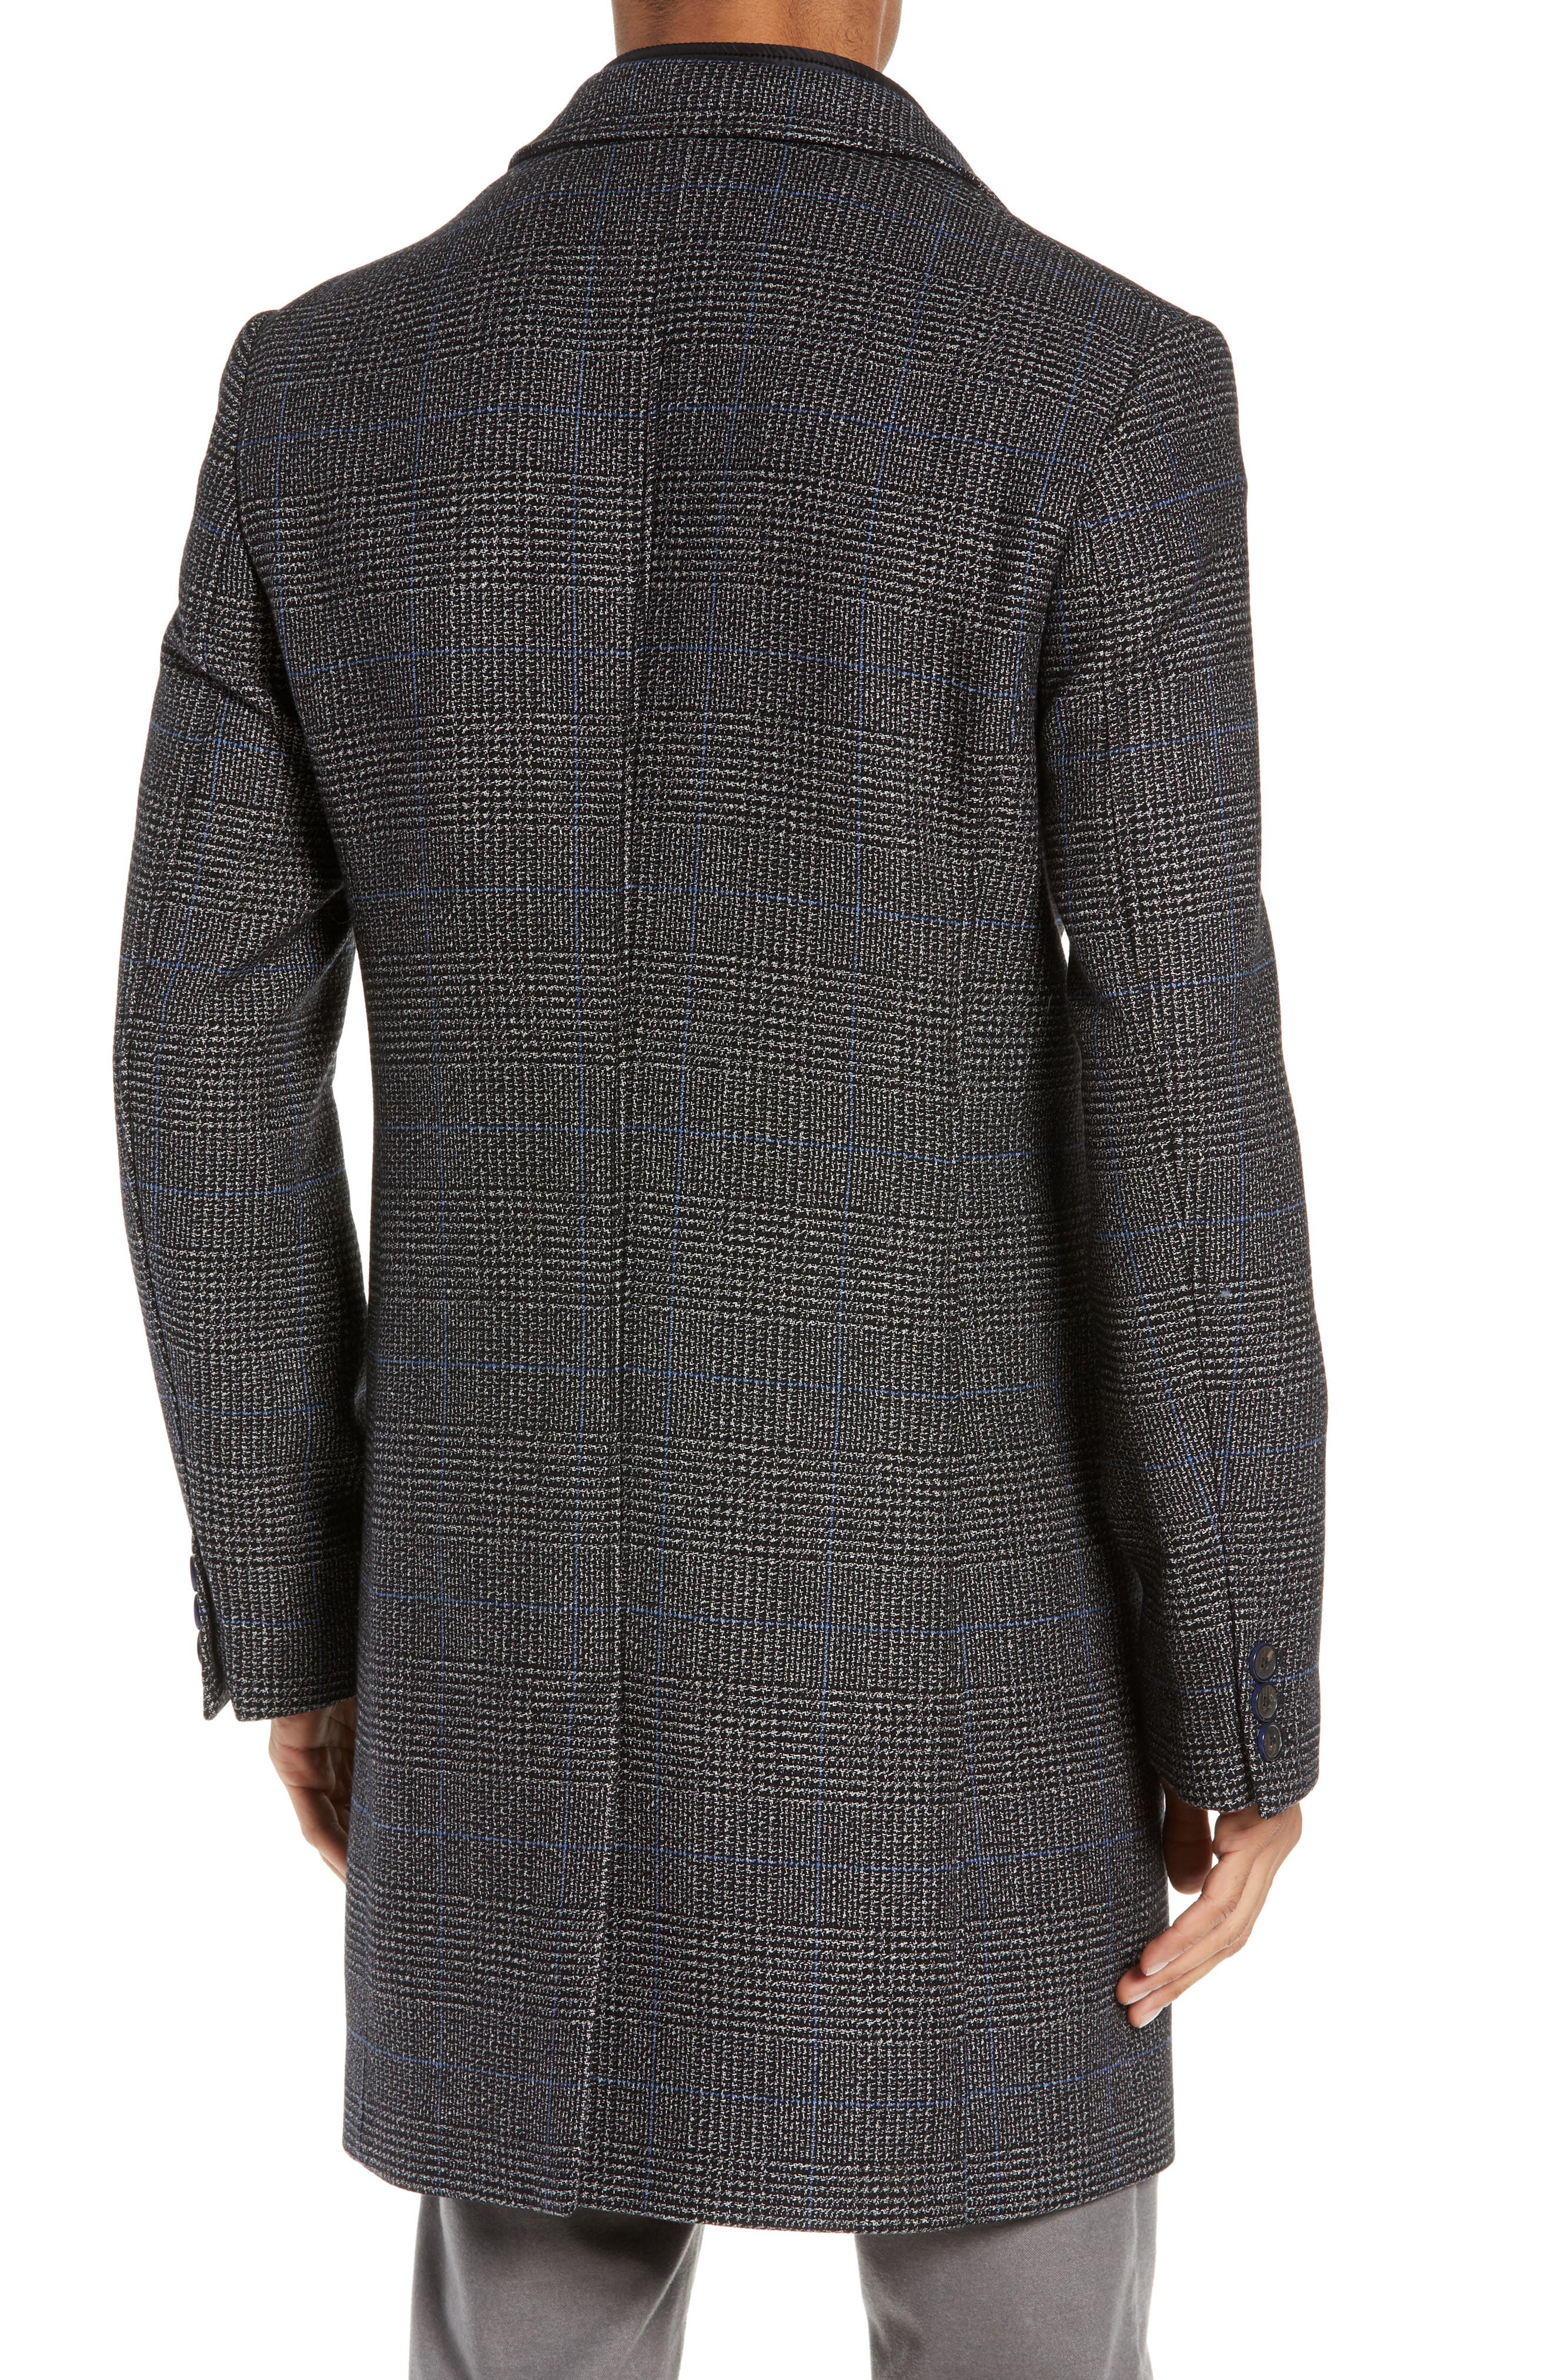 Plaid Stretch Wool & Cotton Overcoat,                             Alternate thumbnail 2, color,                             CHARCOAL